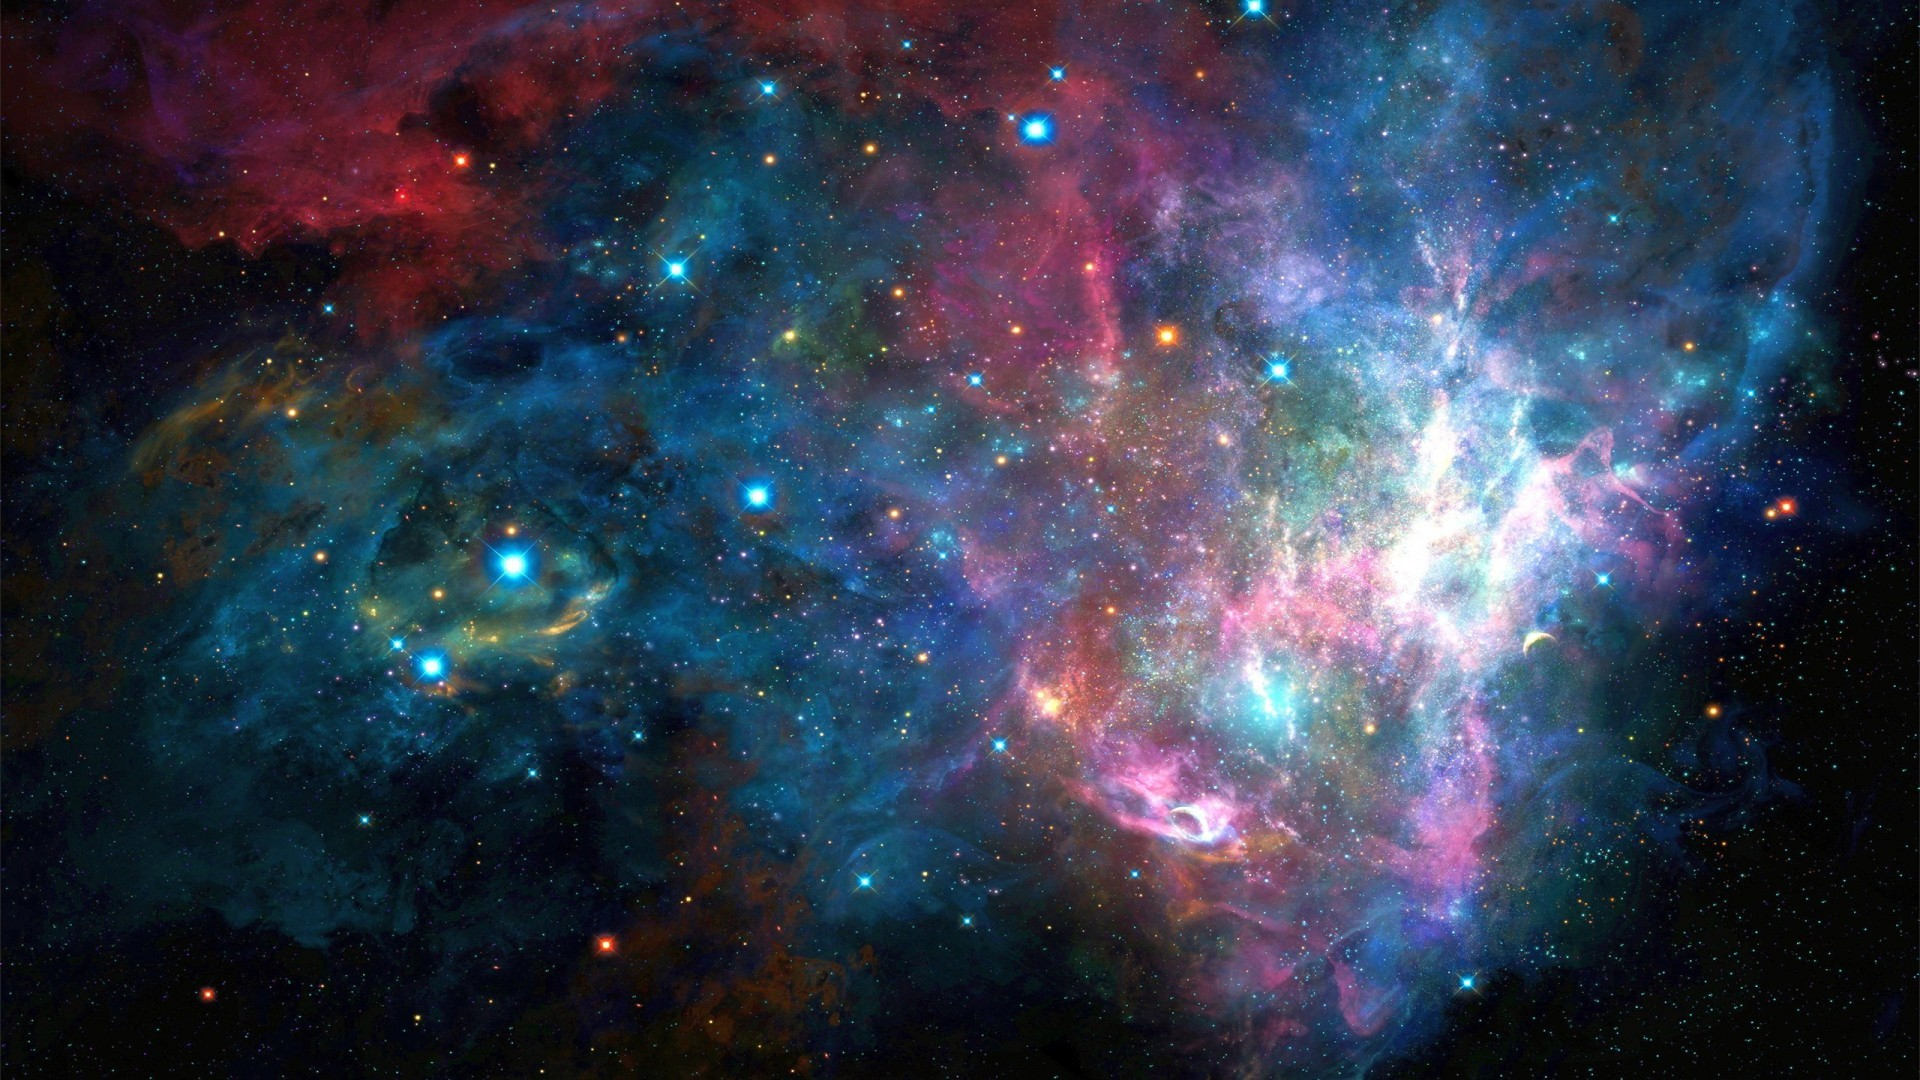 Galaxy Hd Wallpapers 1080p 75 Images